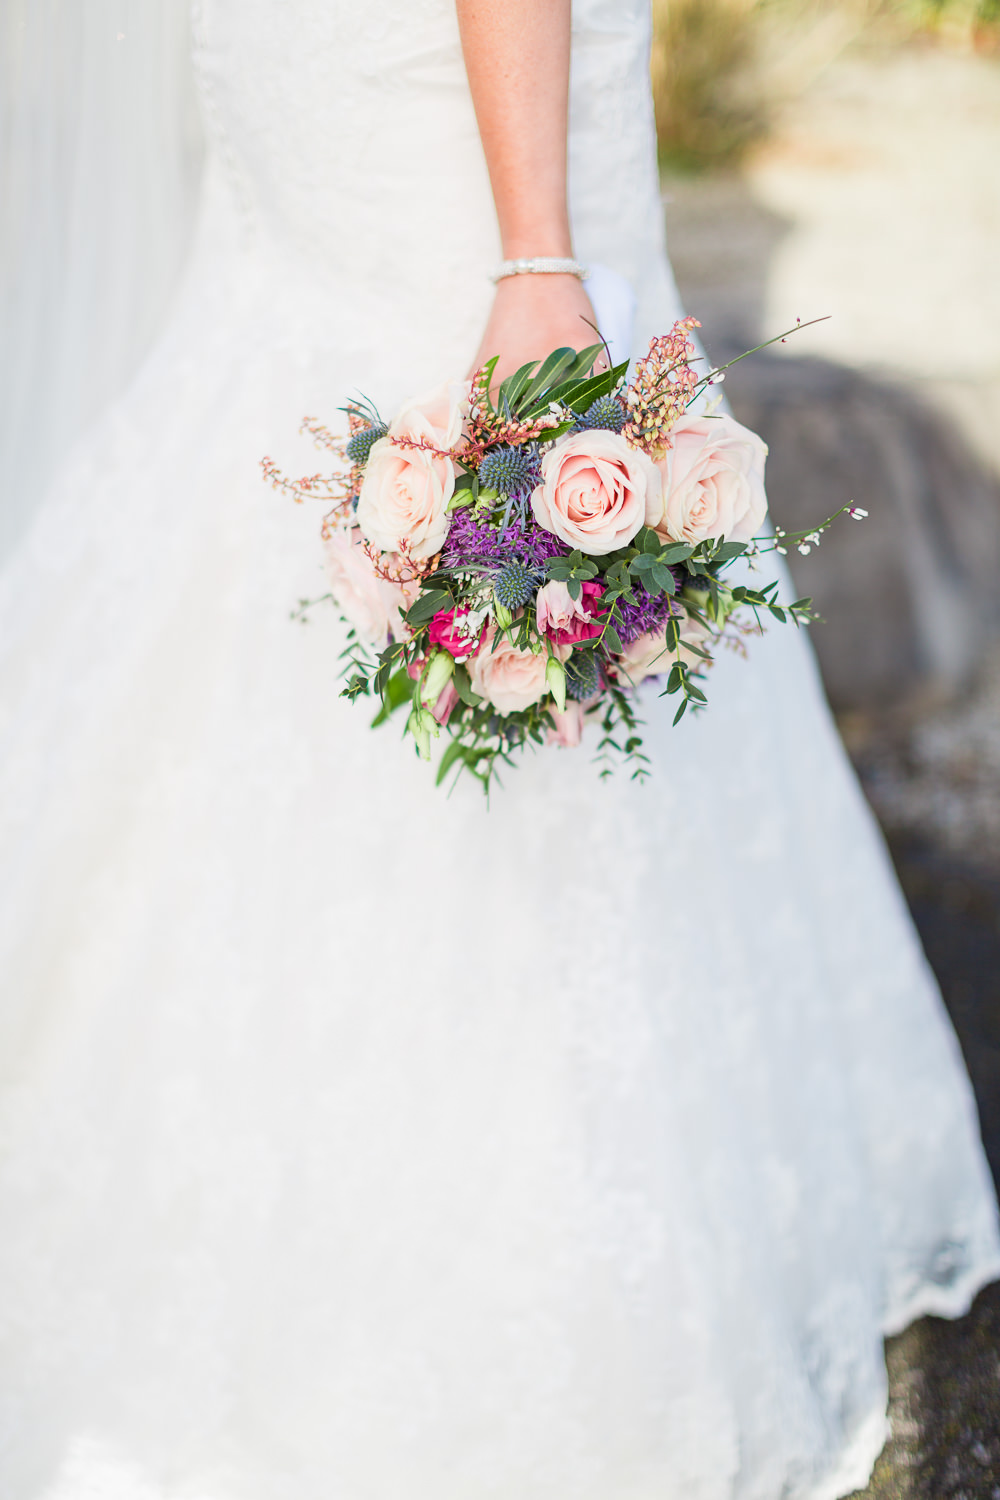 A lace wedding dress for a winter Irish wedding at Slieve Russell ...